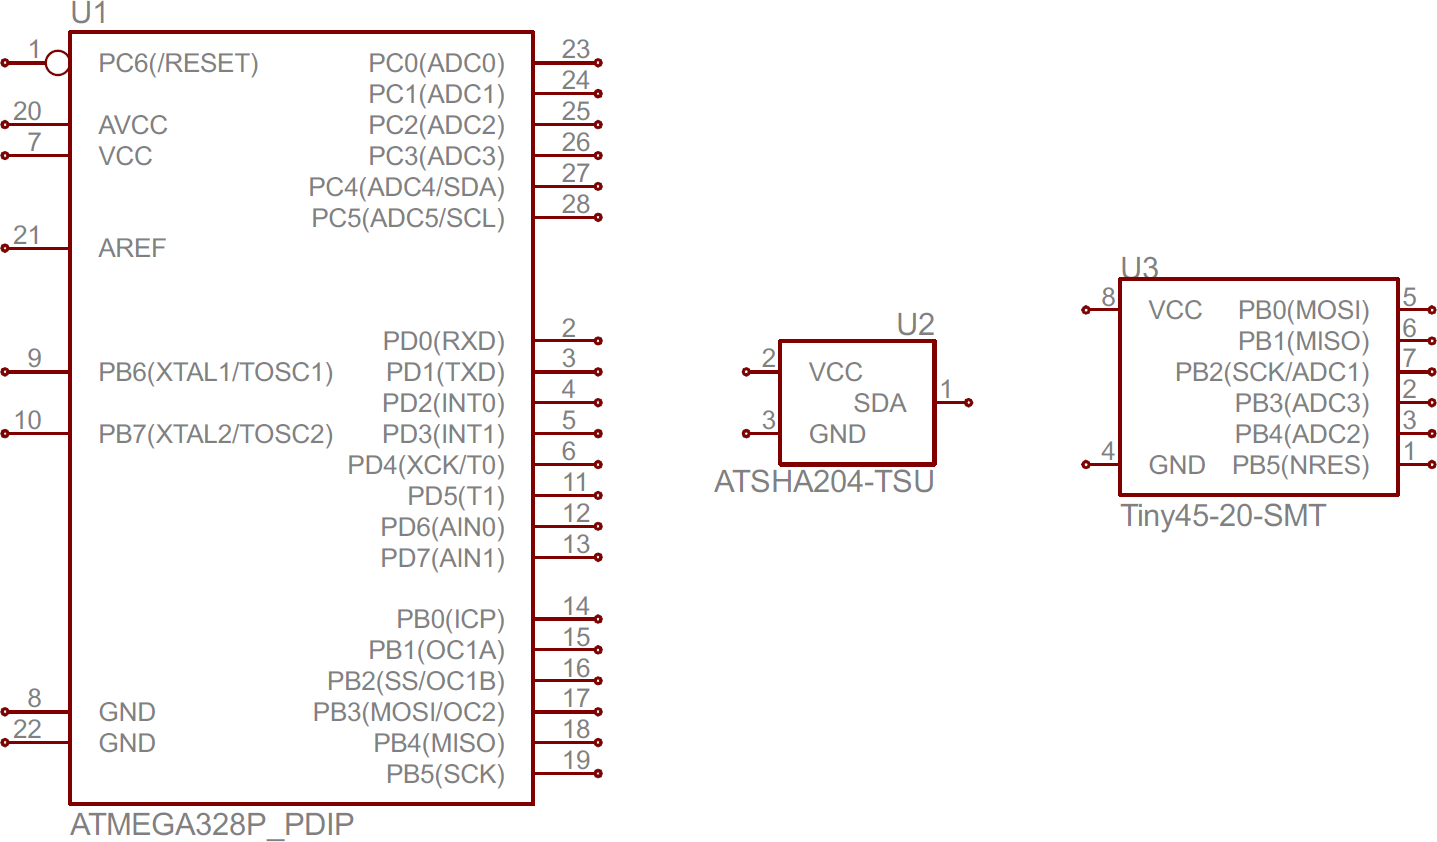 How To Read A Schematic Marine Battery Wiring Diagram 2 Atmega328 Atsha204 And Attiny45 Ic Symbols